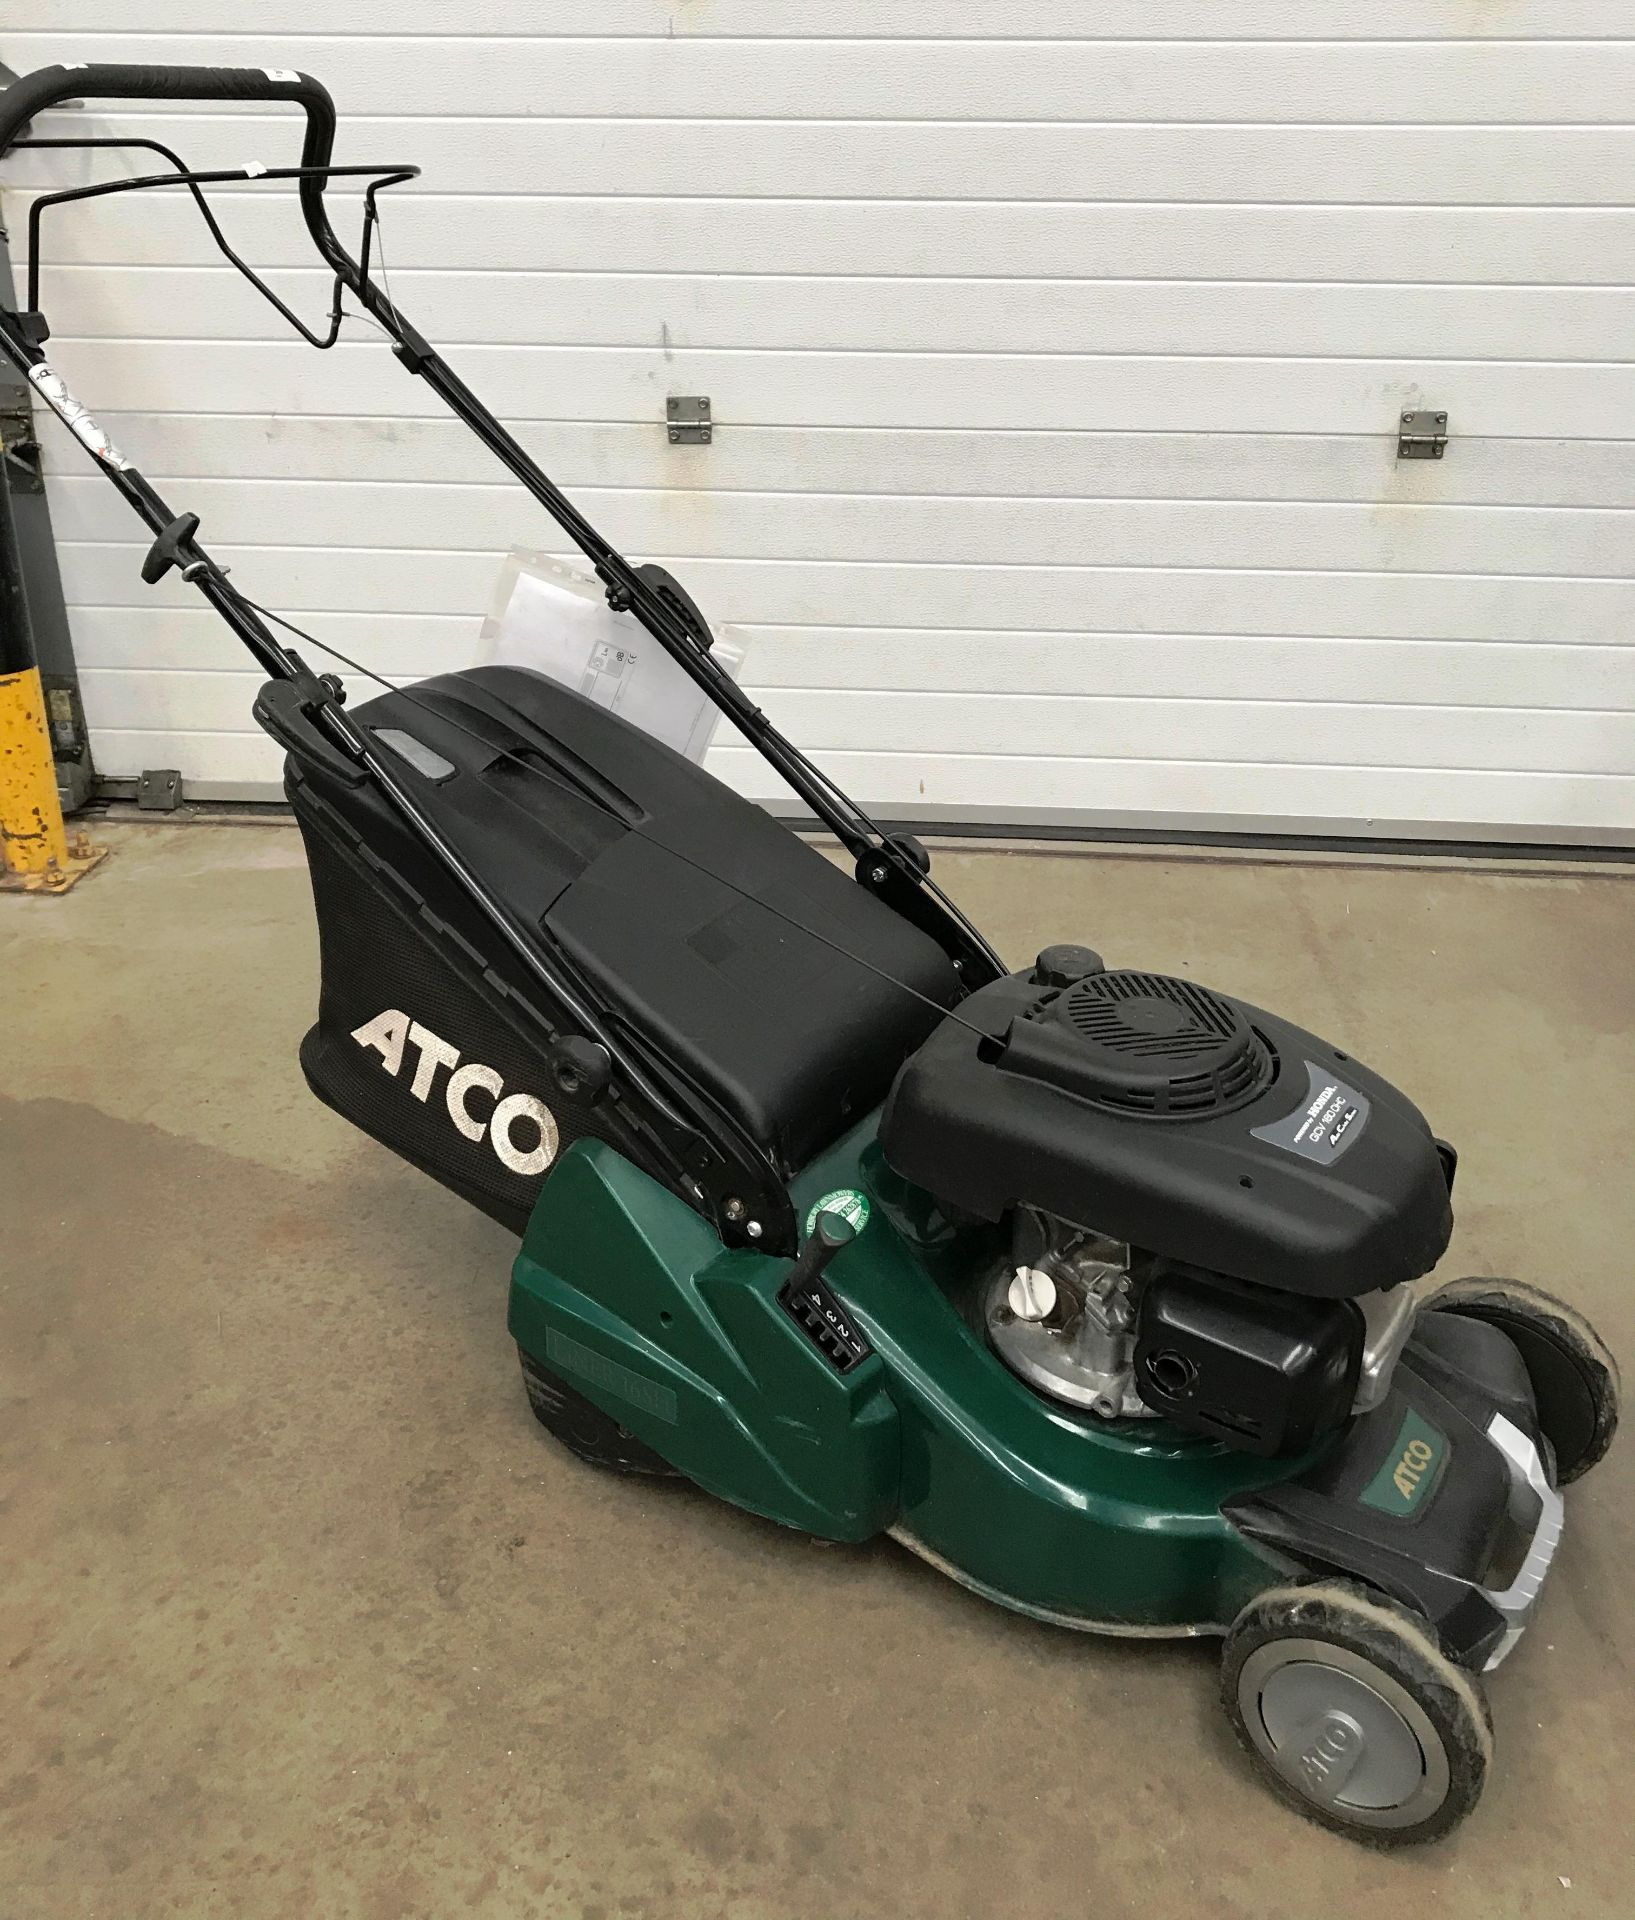 """An Atco NTL 434 TR-R model Liner 16SH 16"""" petrol rotary lawn mower with Honda GCV 160 OHC engine - Image 3 of 3"""